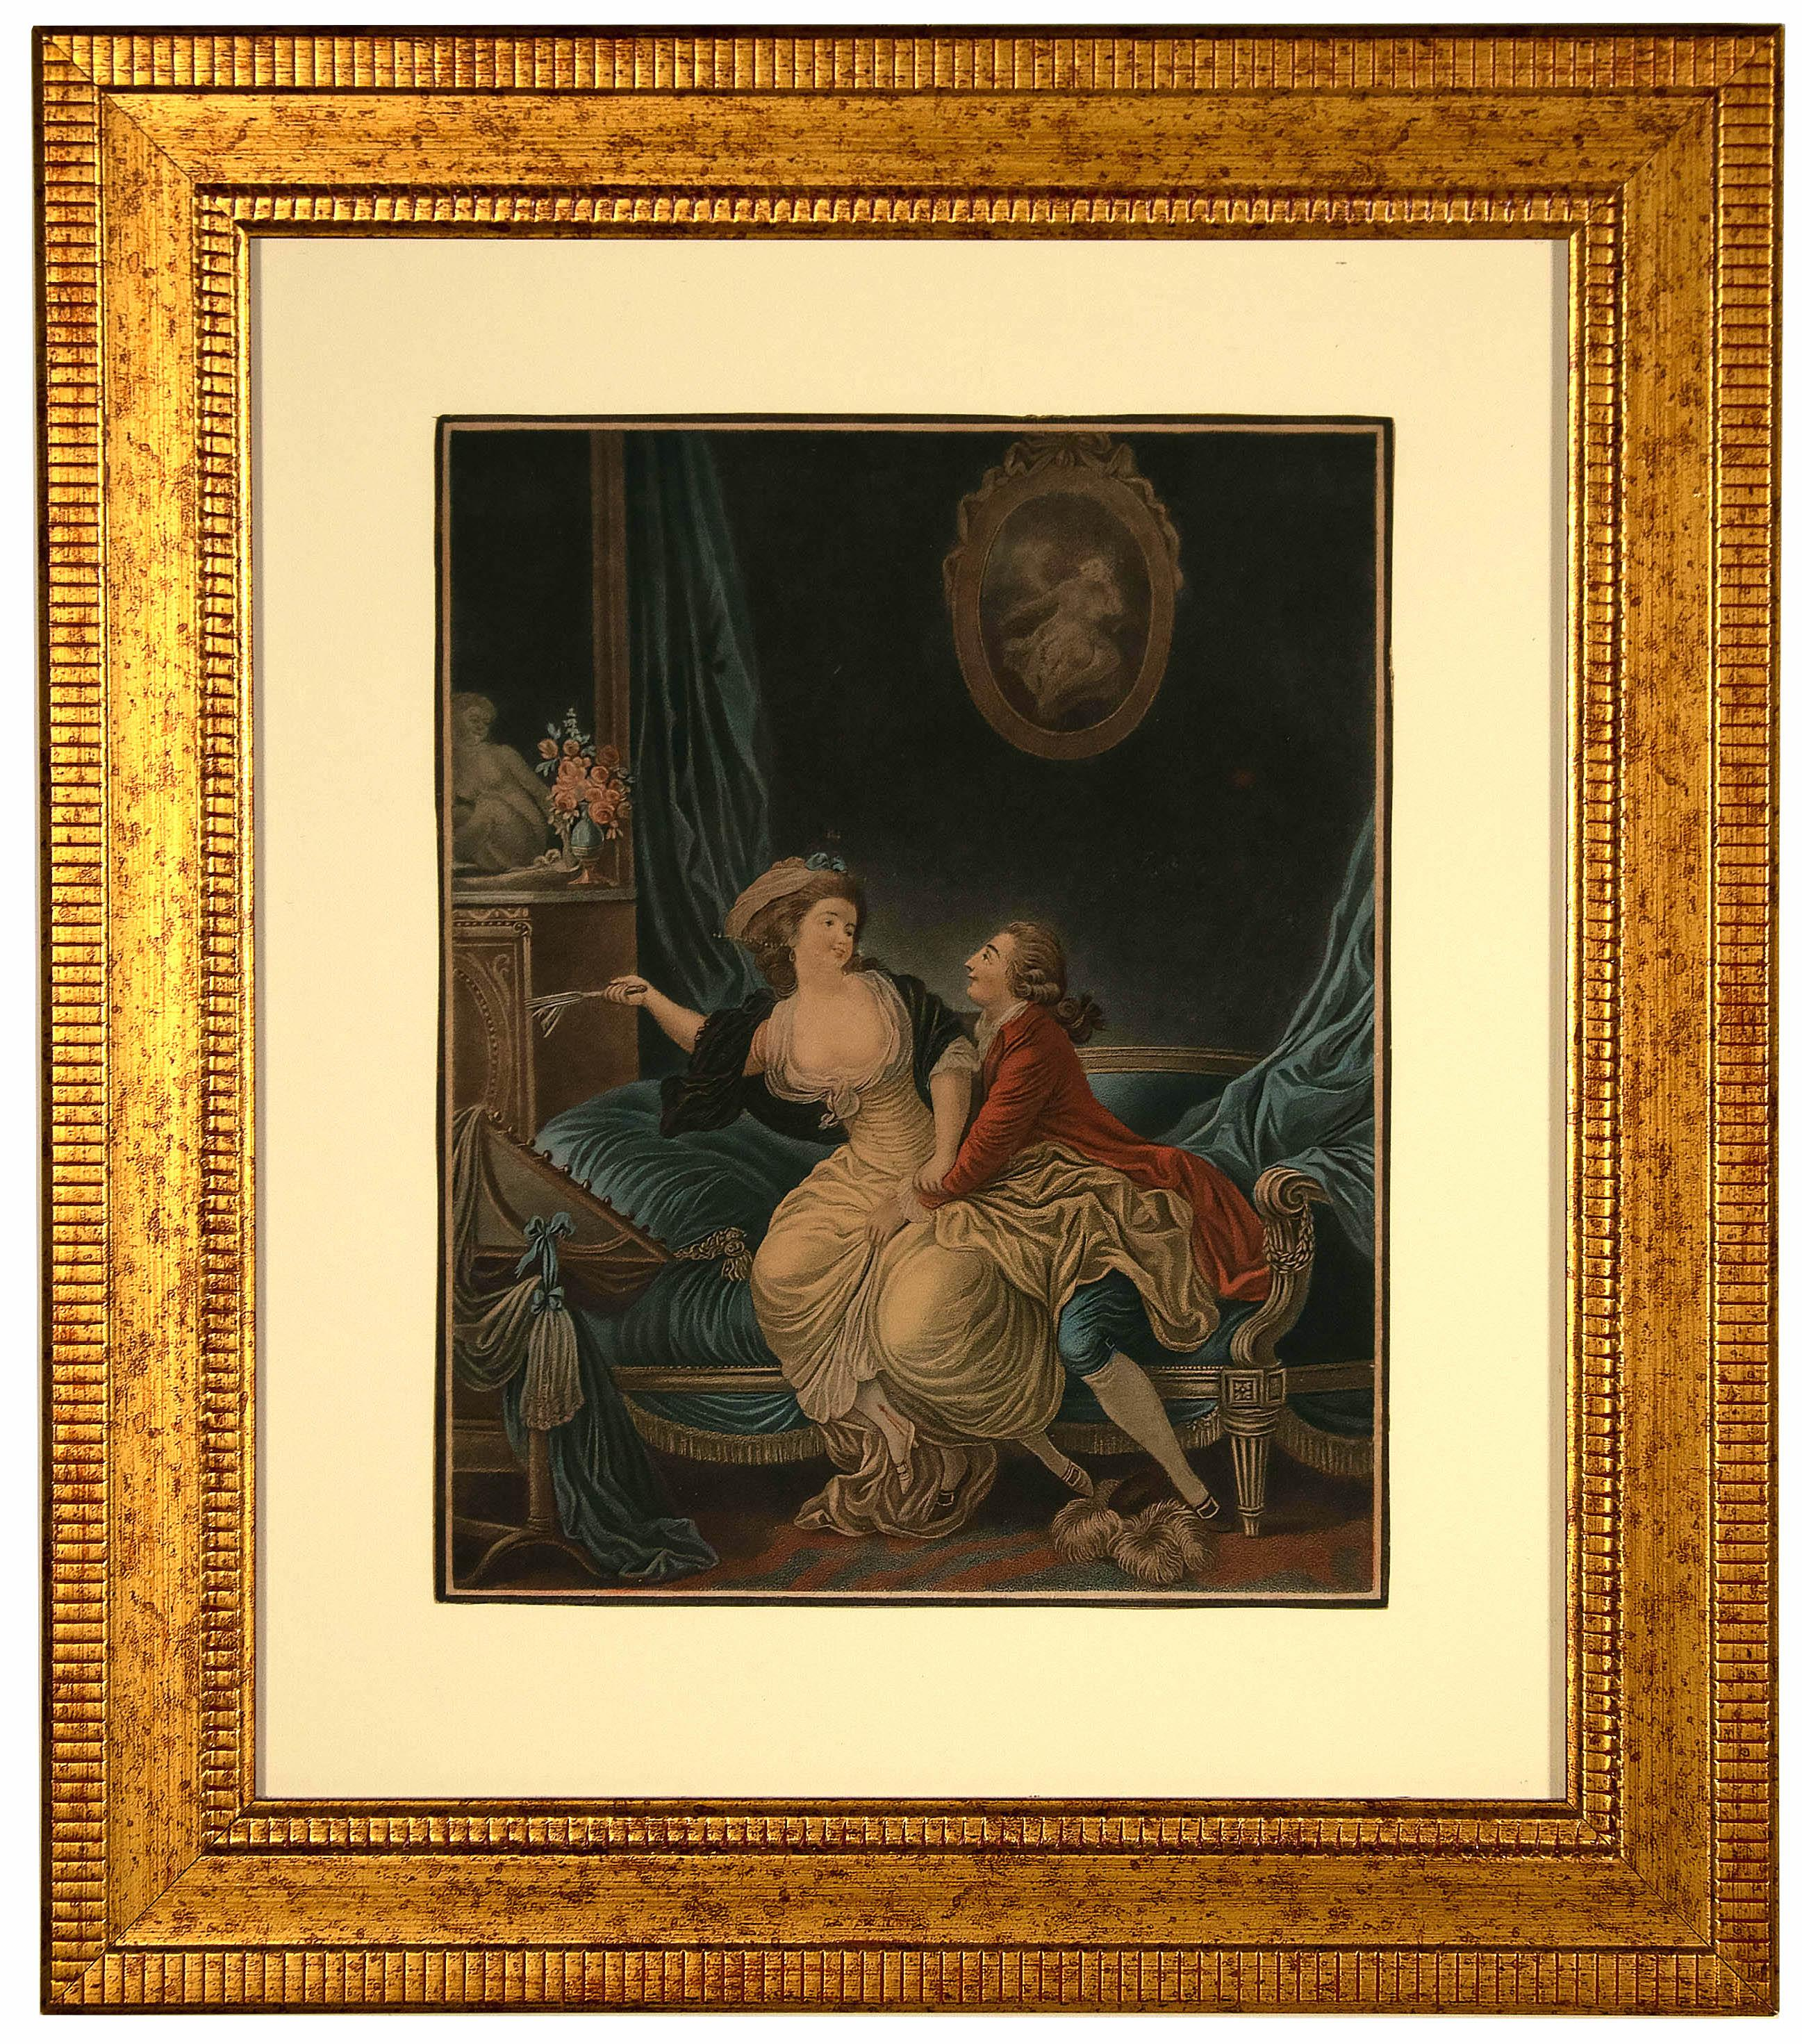 Intimacy - Original Etching by L-M Bonnet - Late 18th Century